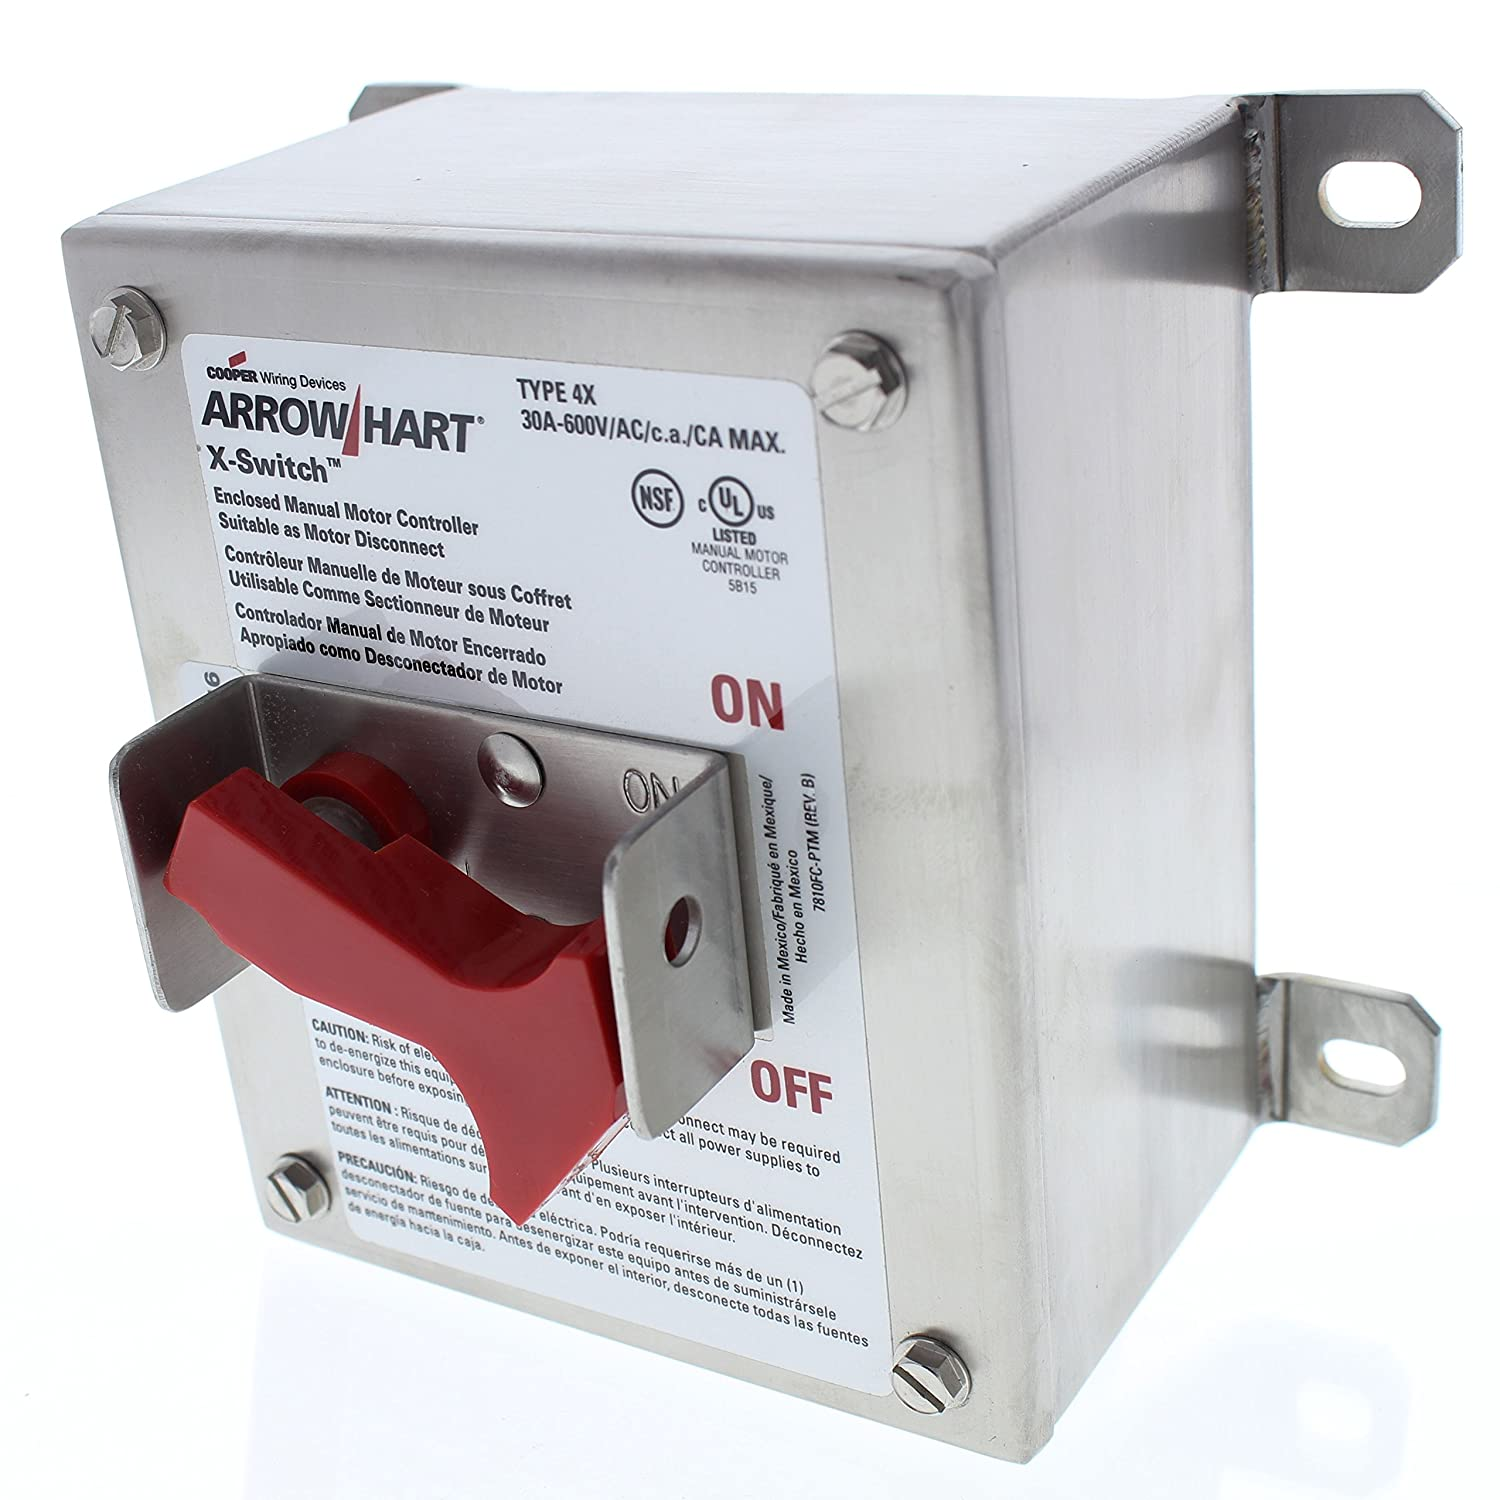 Cooper Wiring Devices Ah7810xc00s 316 4x Sw 316ss No In Out Ss Arrow Hart Drain Switches Dimmers Amazon Canada